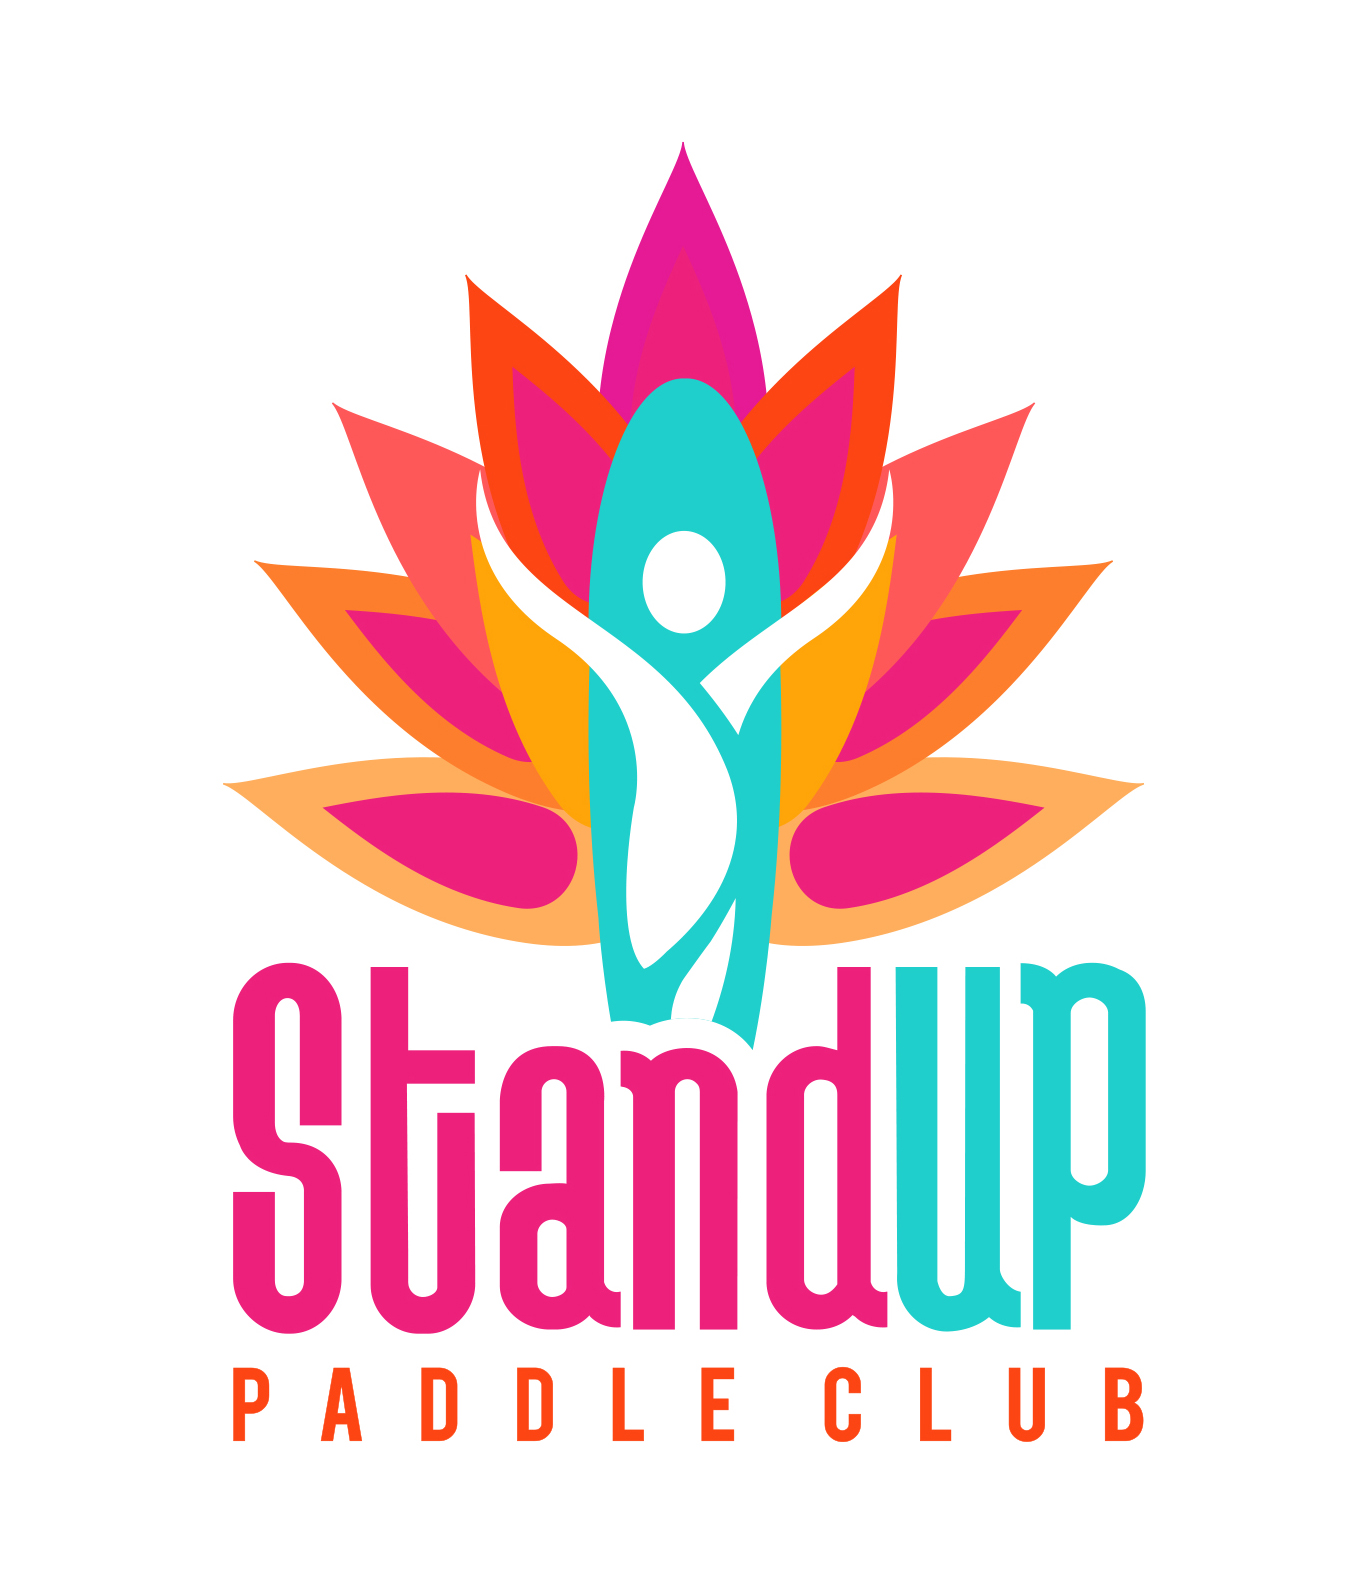 Stand Up Paddle Club